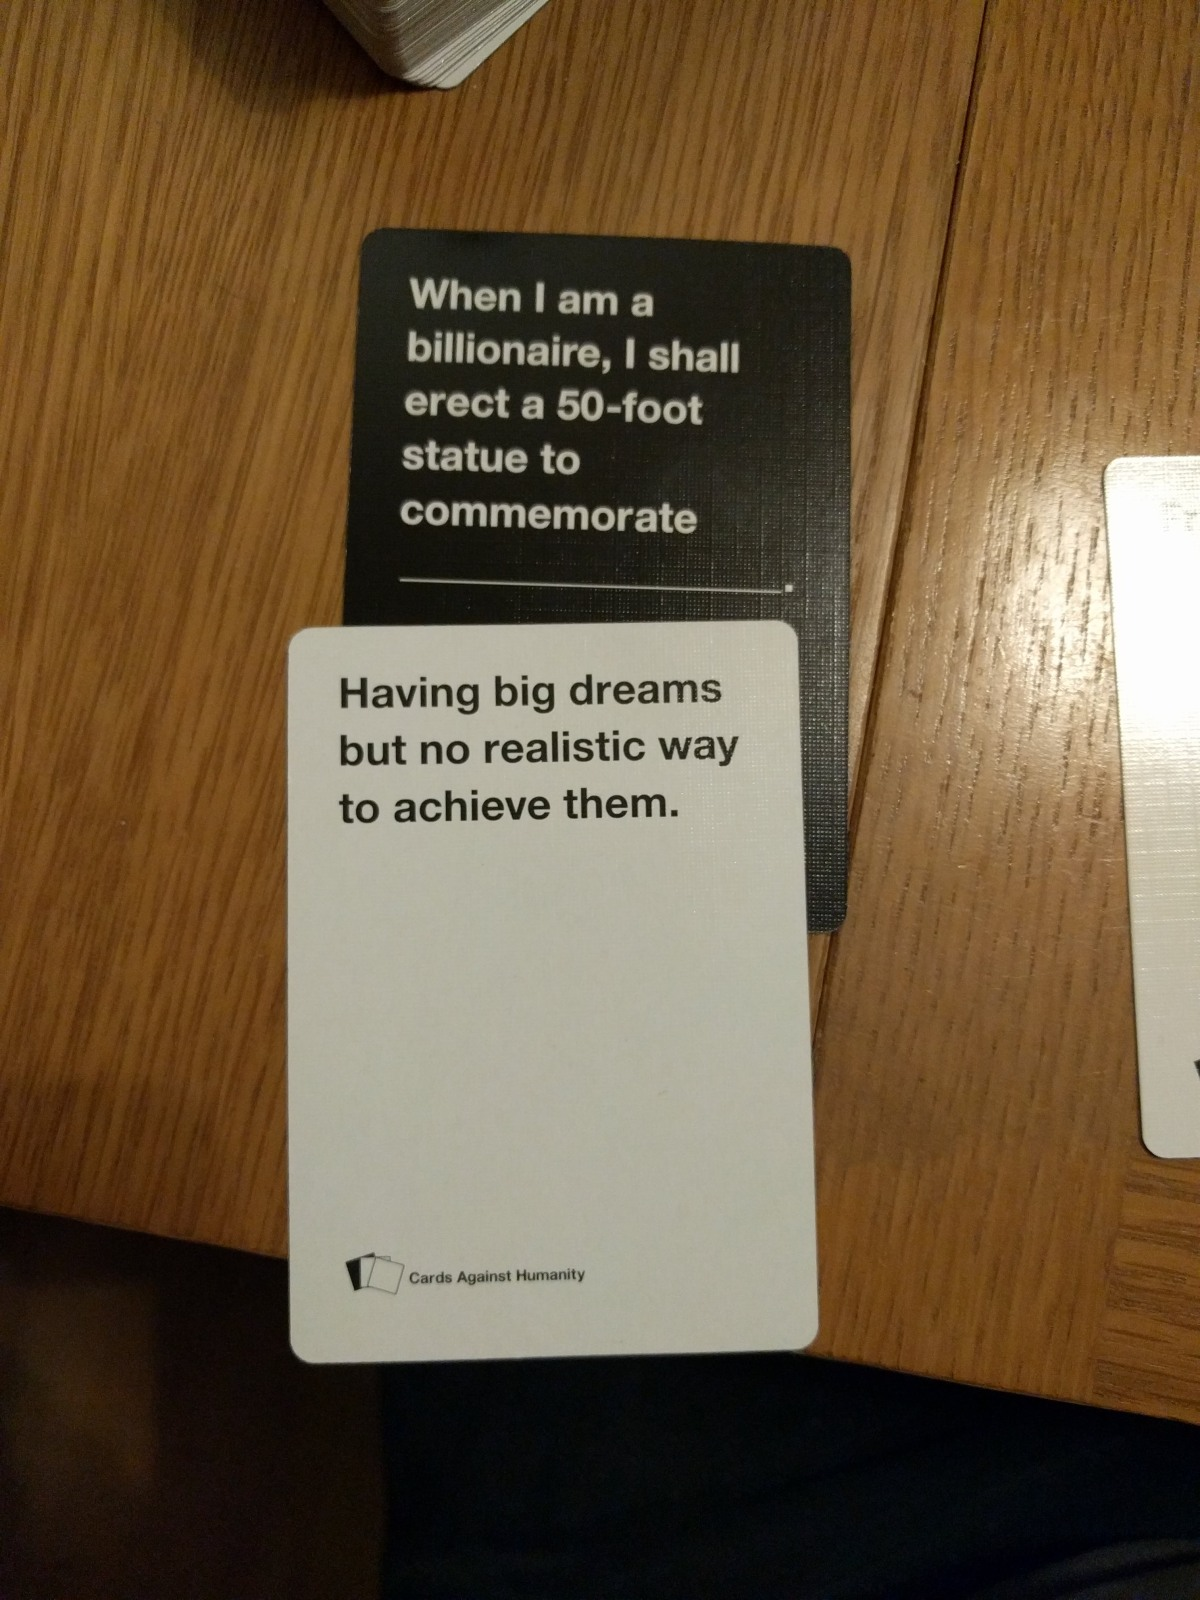 Cards Against Humanity – A Work Which Becomes A Genre Unto Itself